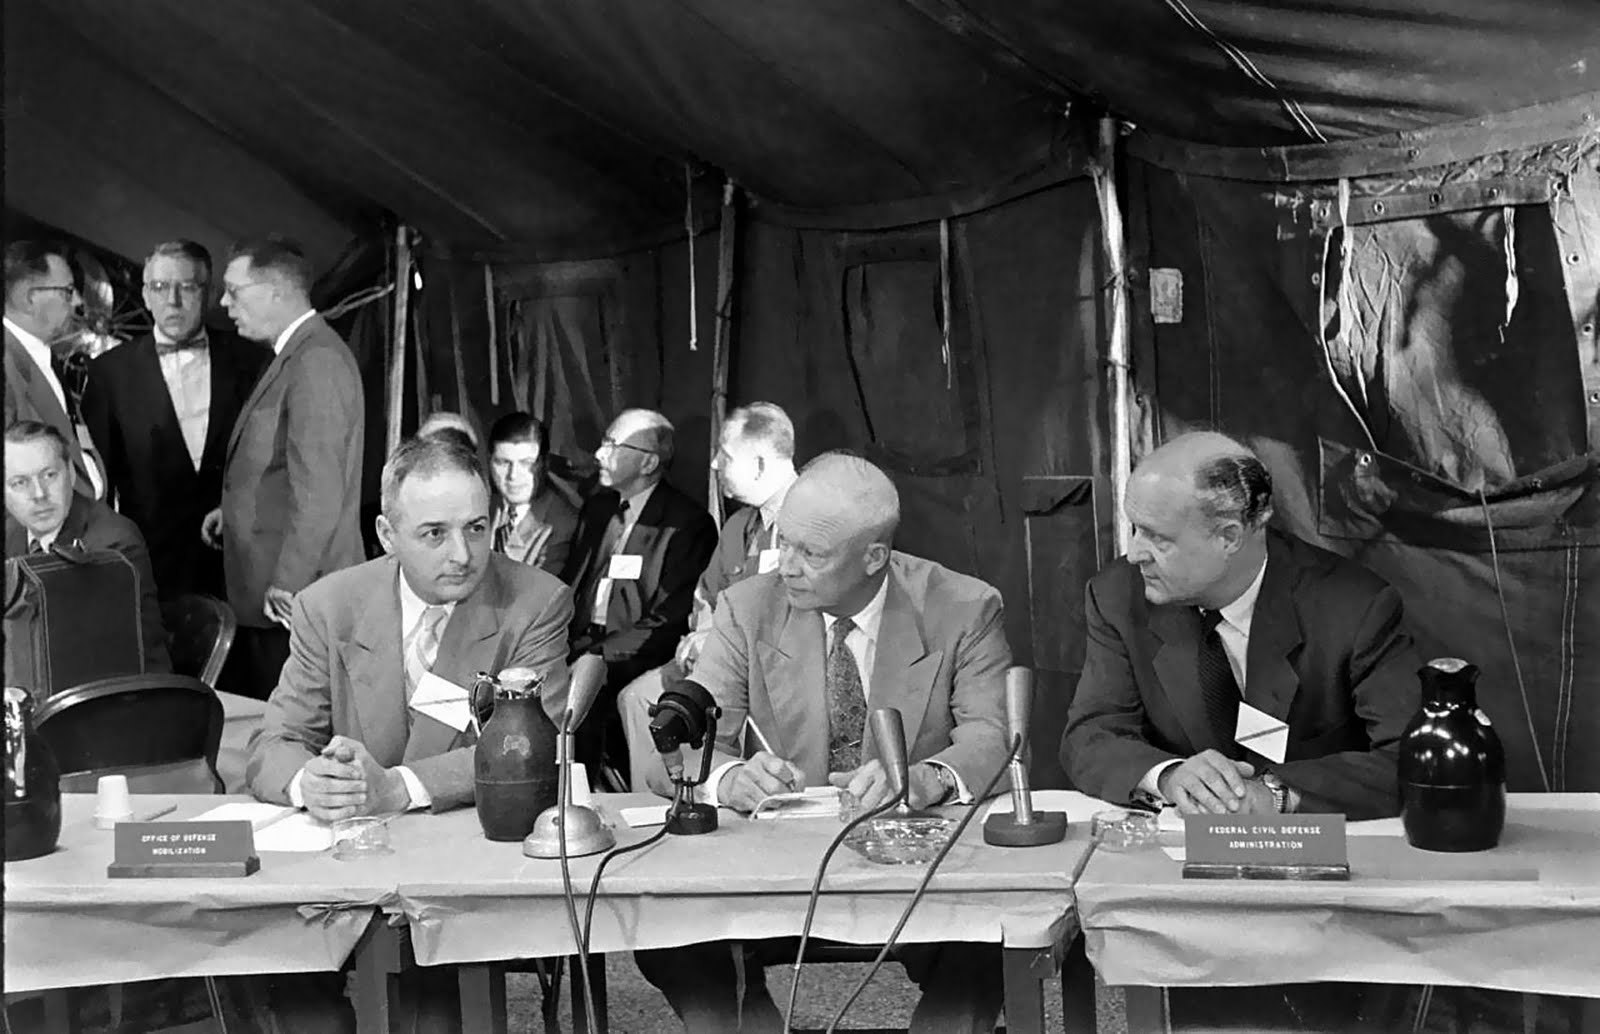 The emergency meeting during Operation Alert. Eisenhower was evacuated by helicopter from Washington D.C.